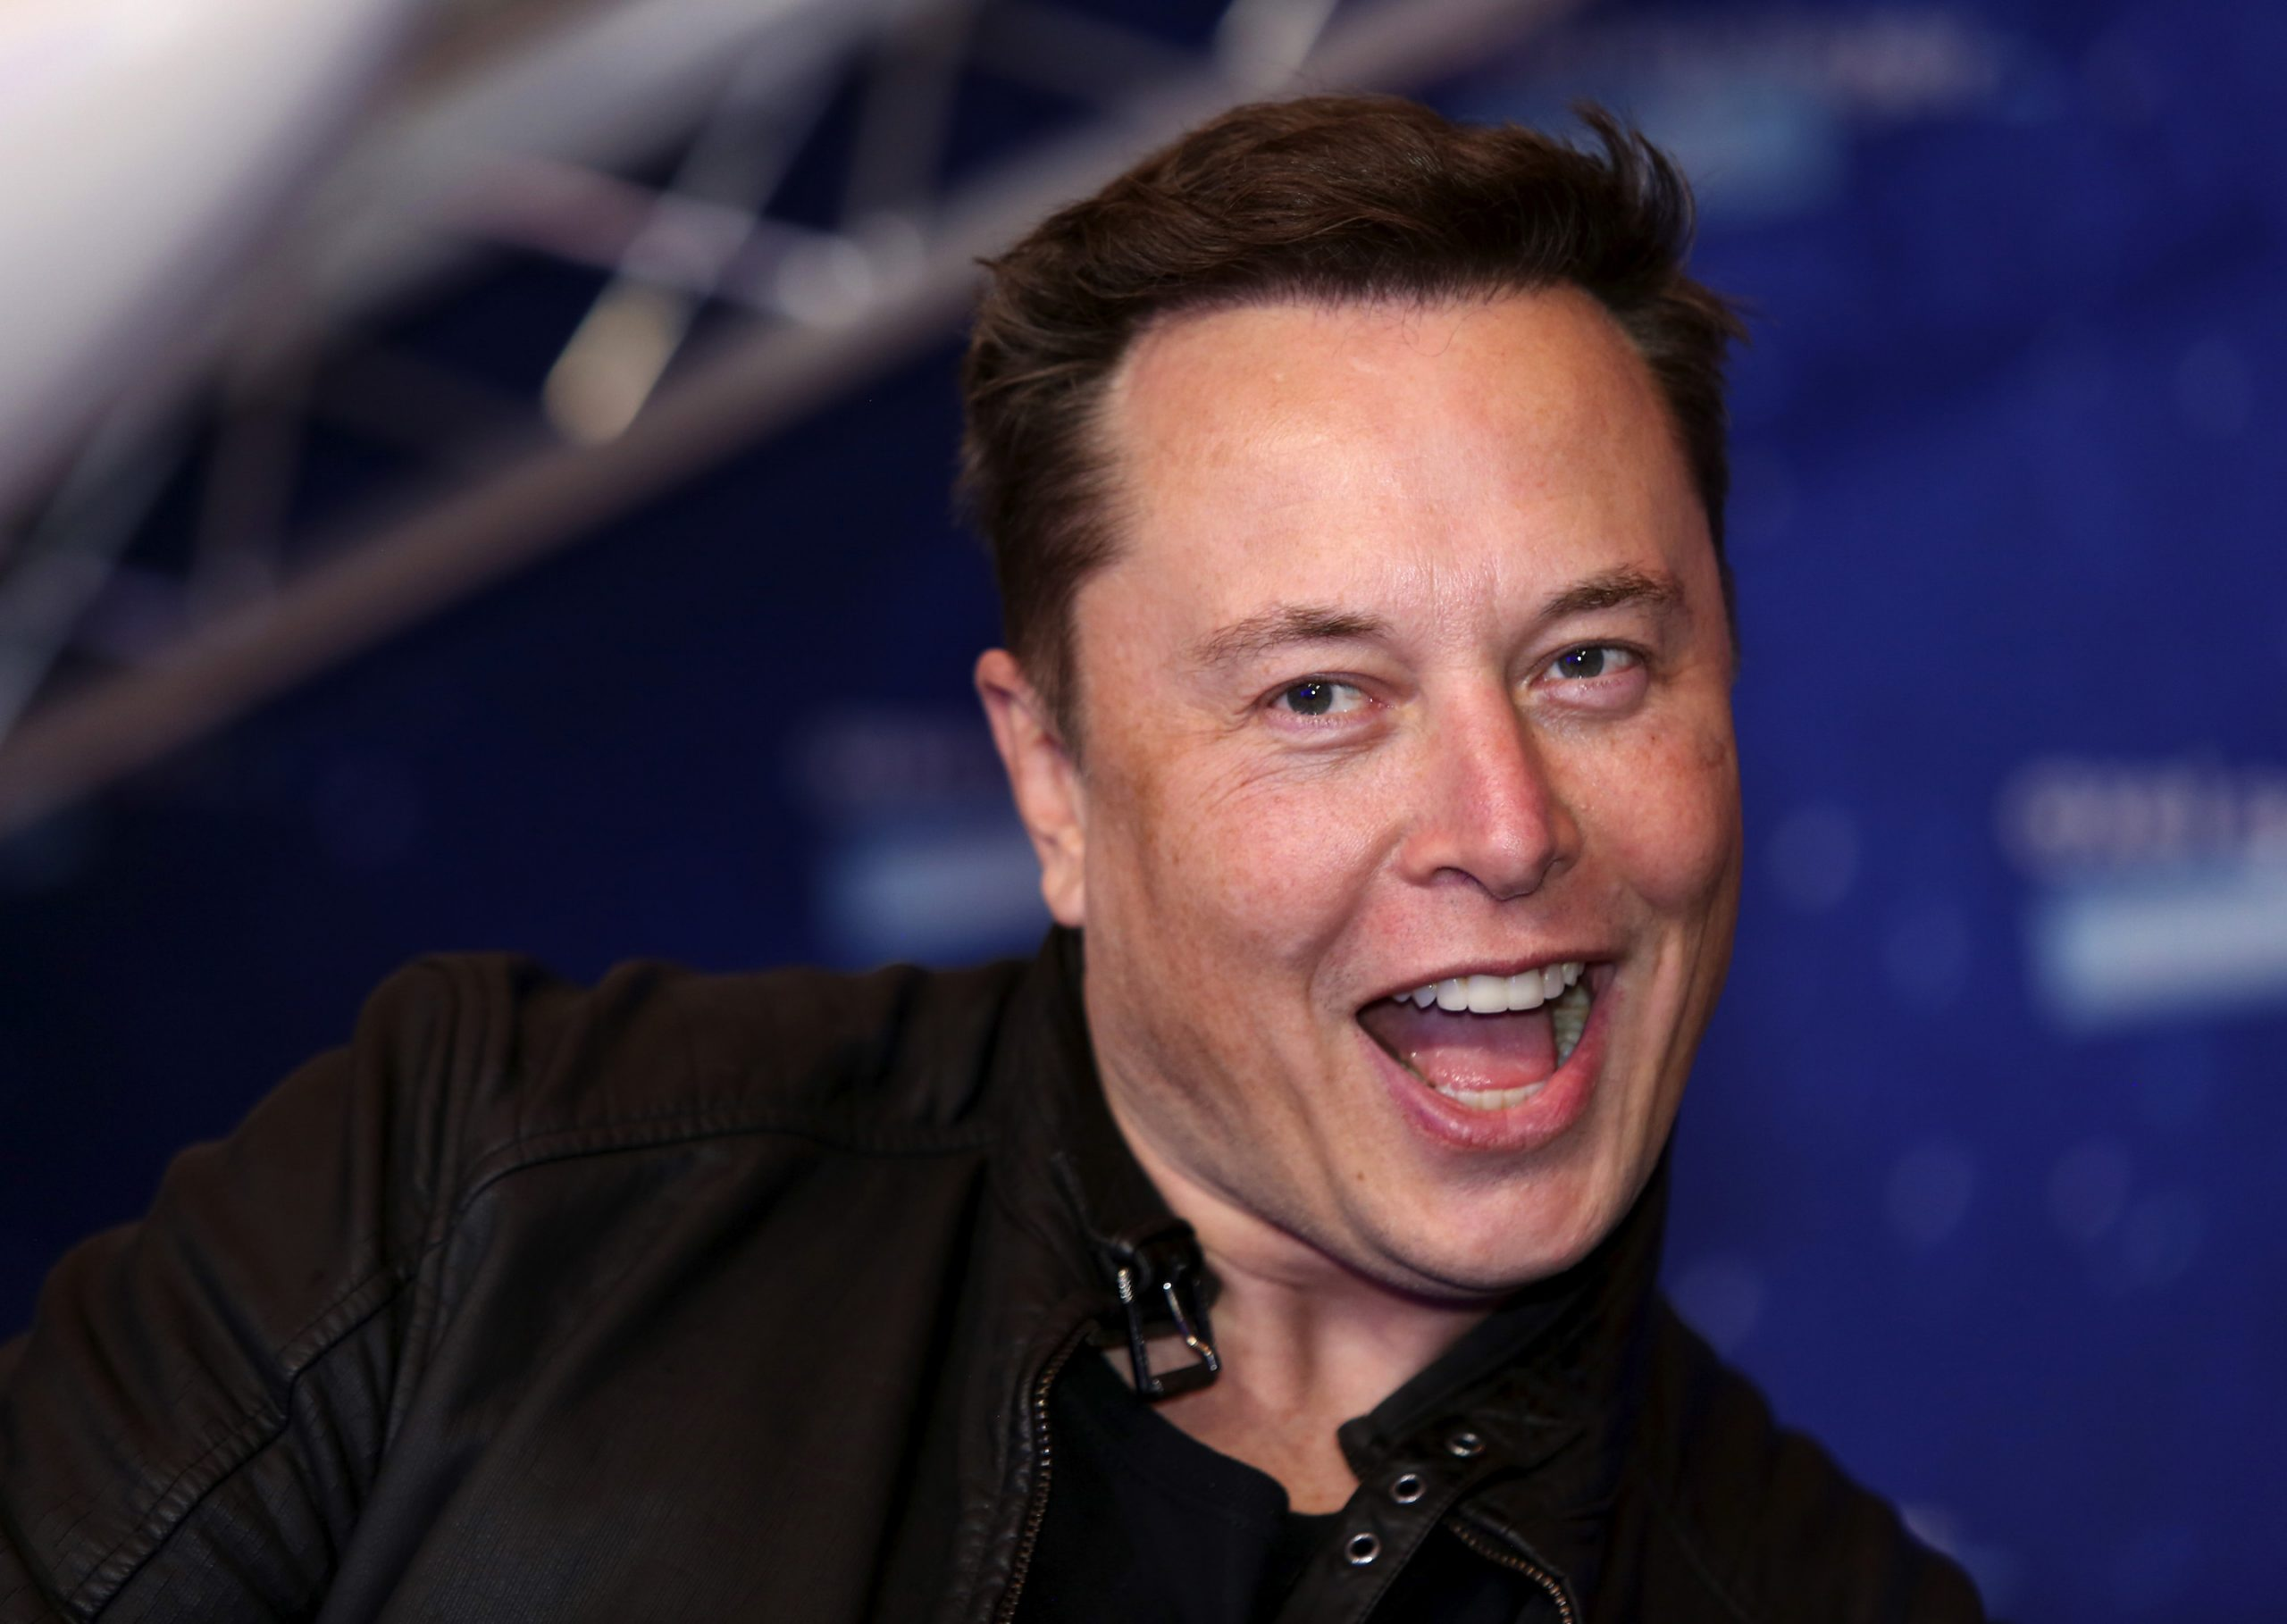 Elon Musk, founder of SpaceX and chief executive officer of Tesla Inc.,